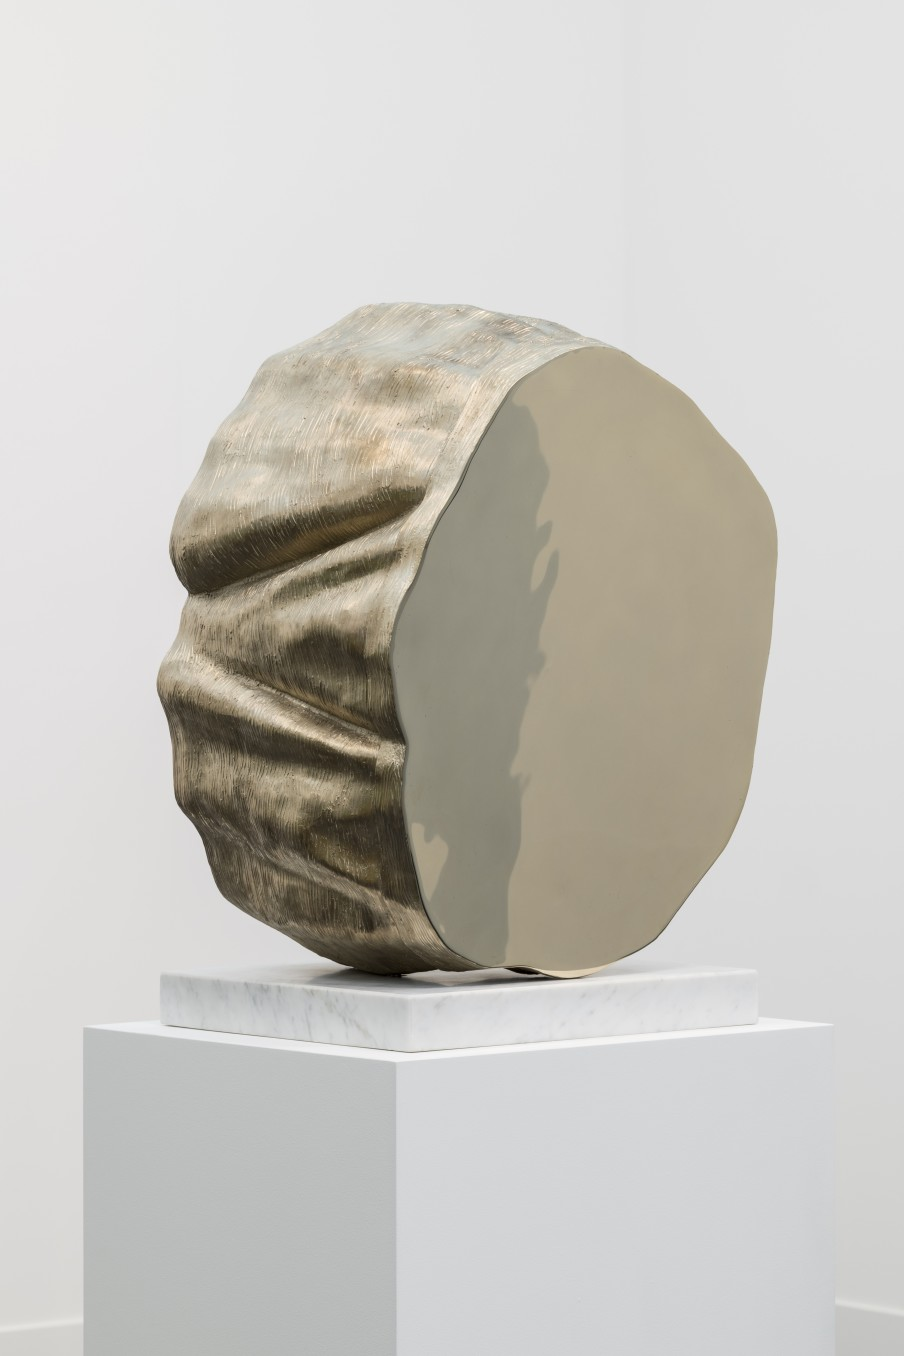 Thomas J Price, Power Object Section 1 No 1, 2018, Aluminium Bronze Composite With Marble Base Bronze, 62 X 44 X 32 cm